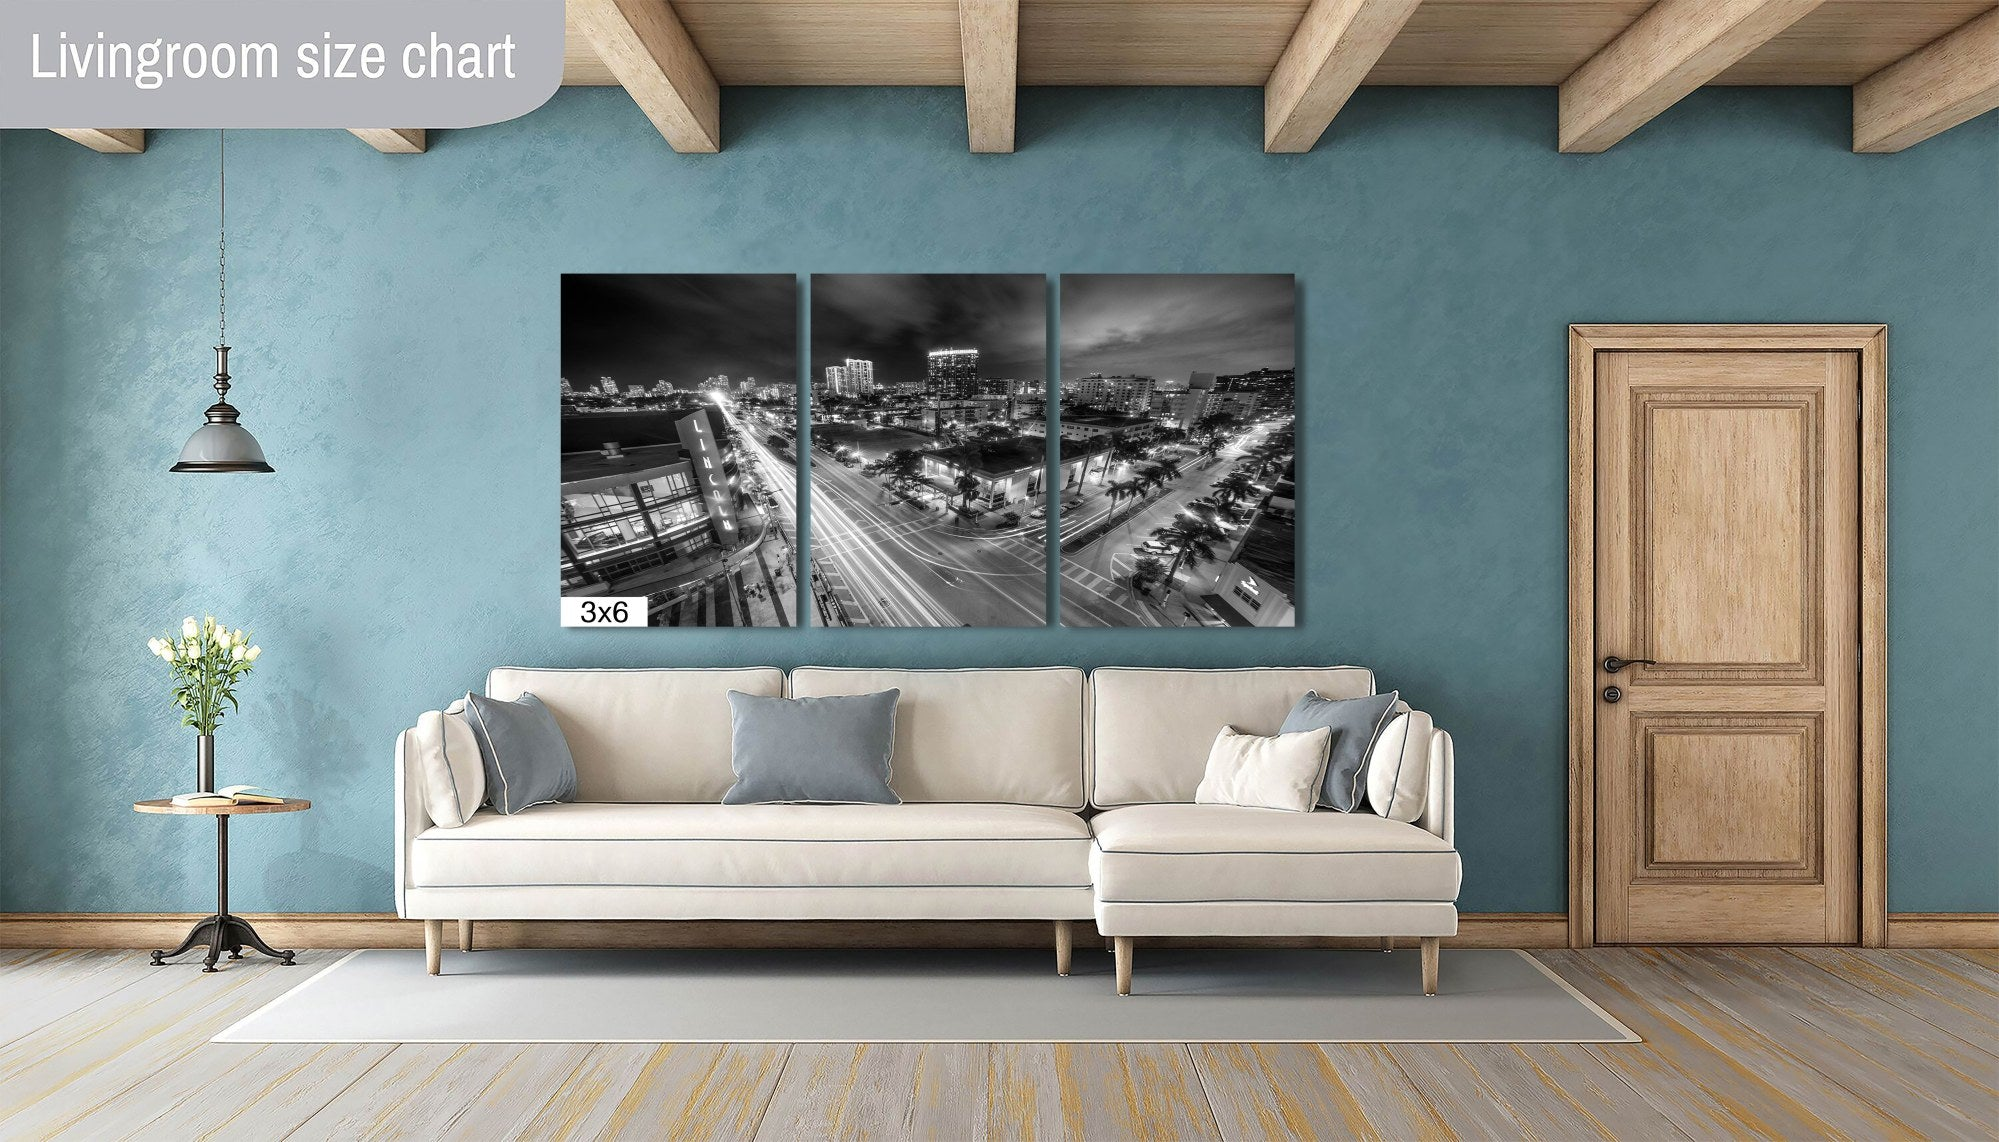 Downtown Miami Lincoln Road Florida Black and White B&W Photograph Canvas Print Metal Livingroom Art Wall Decor Home Gift Present Cityscape